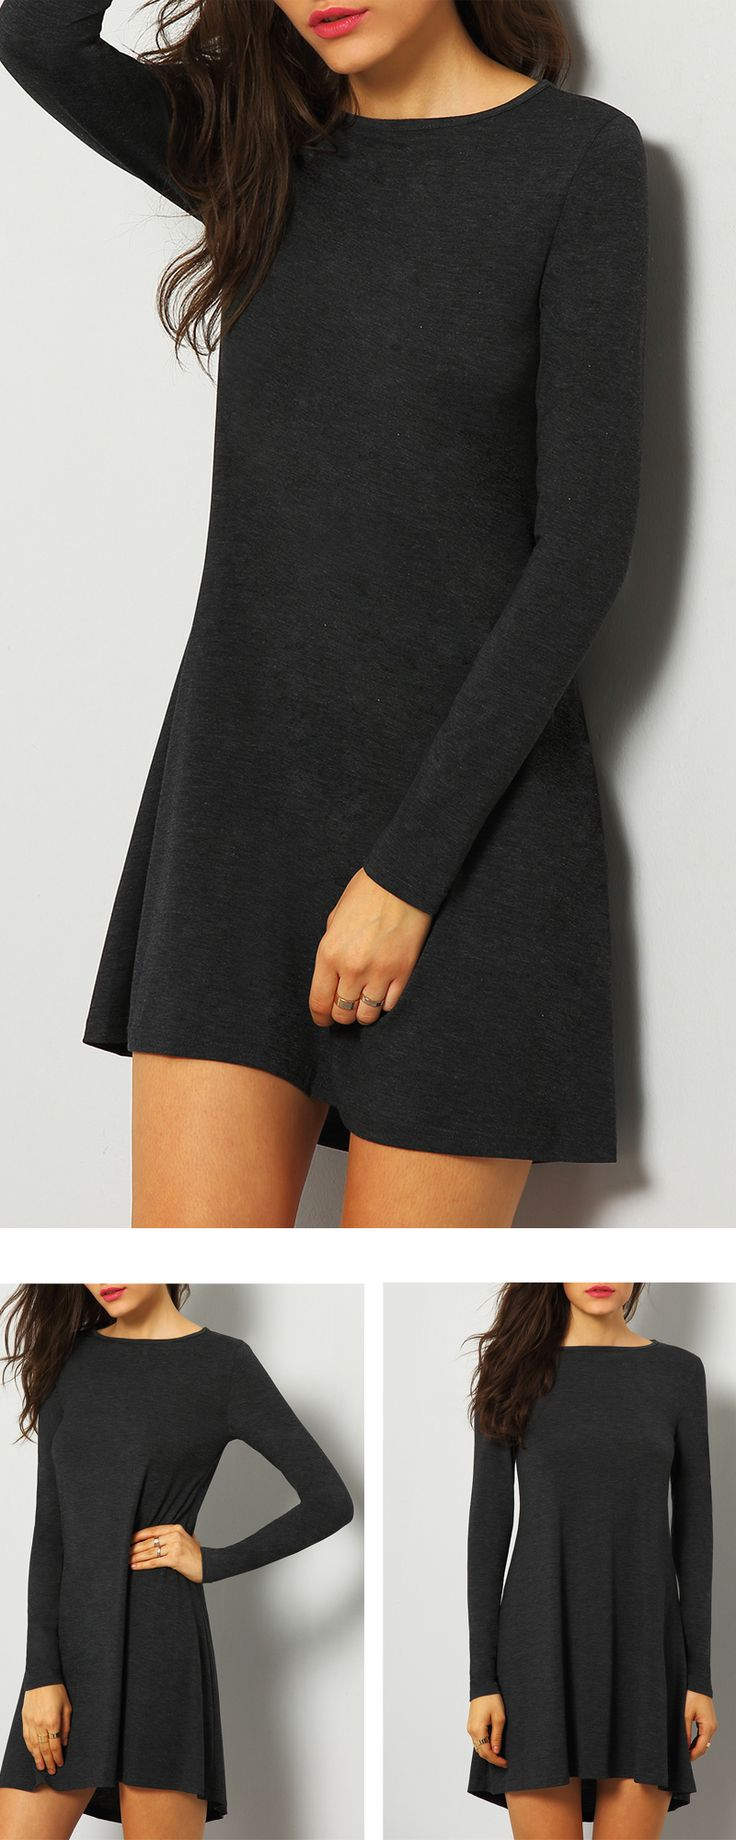 Minimalist and classic : Grey Long Sleeve  Simple  Casual Dress. Basic loose shift plain fall jersey Tshirt dress from shein  .